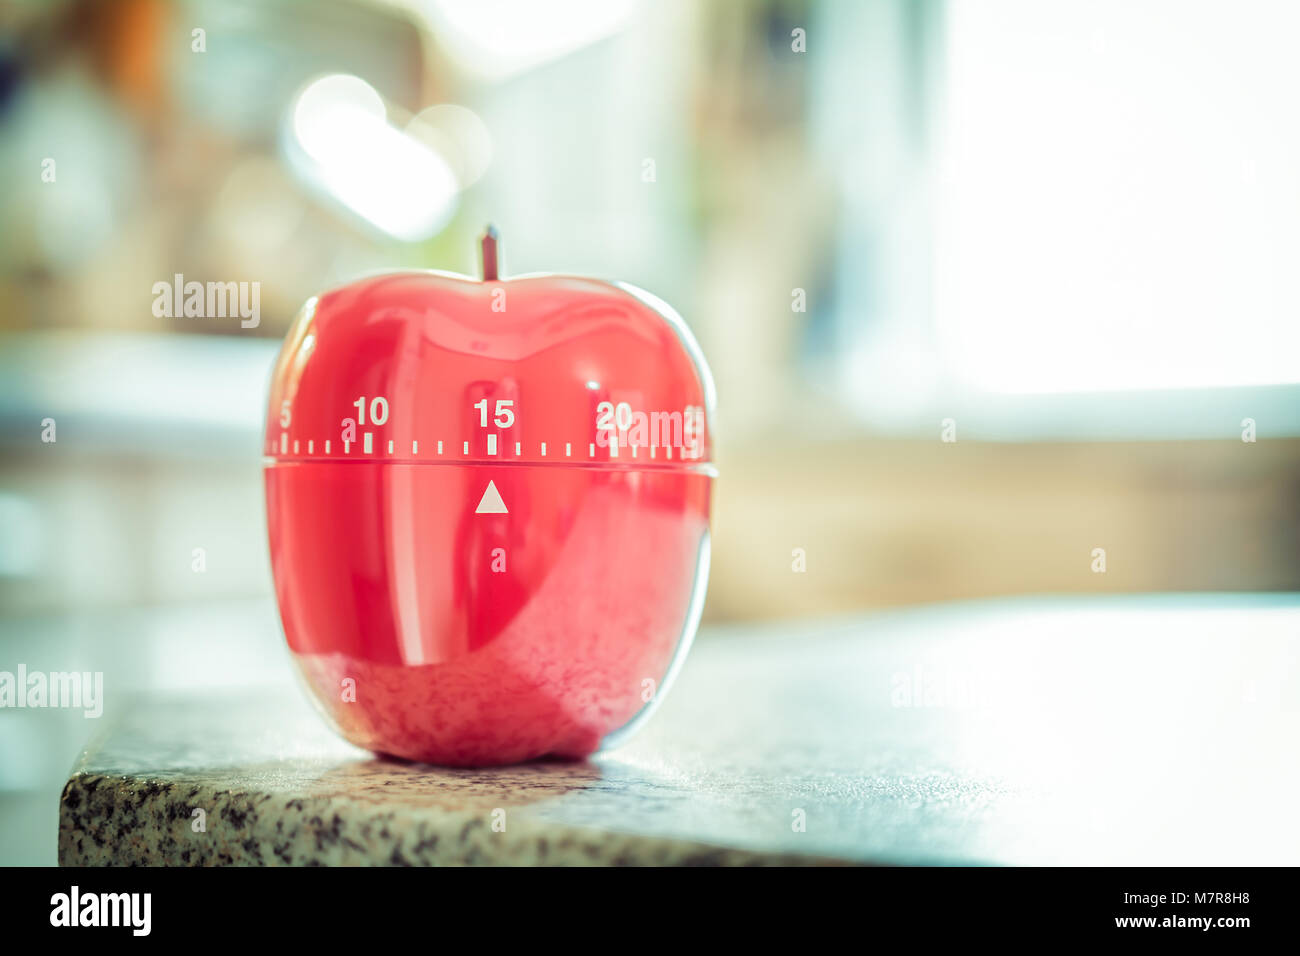 15 minutes red kitchen egg timer in apple shape stock photo